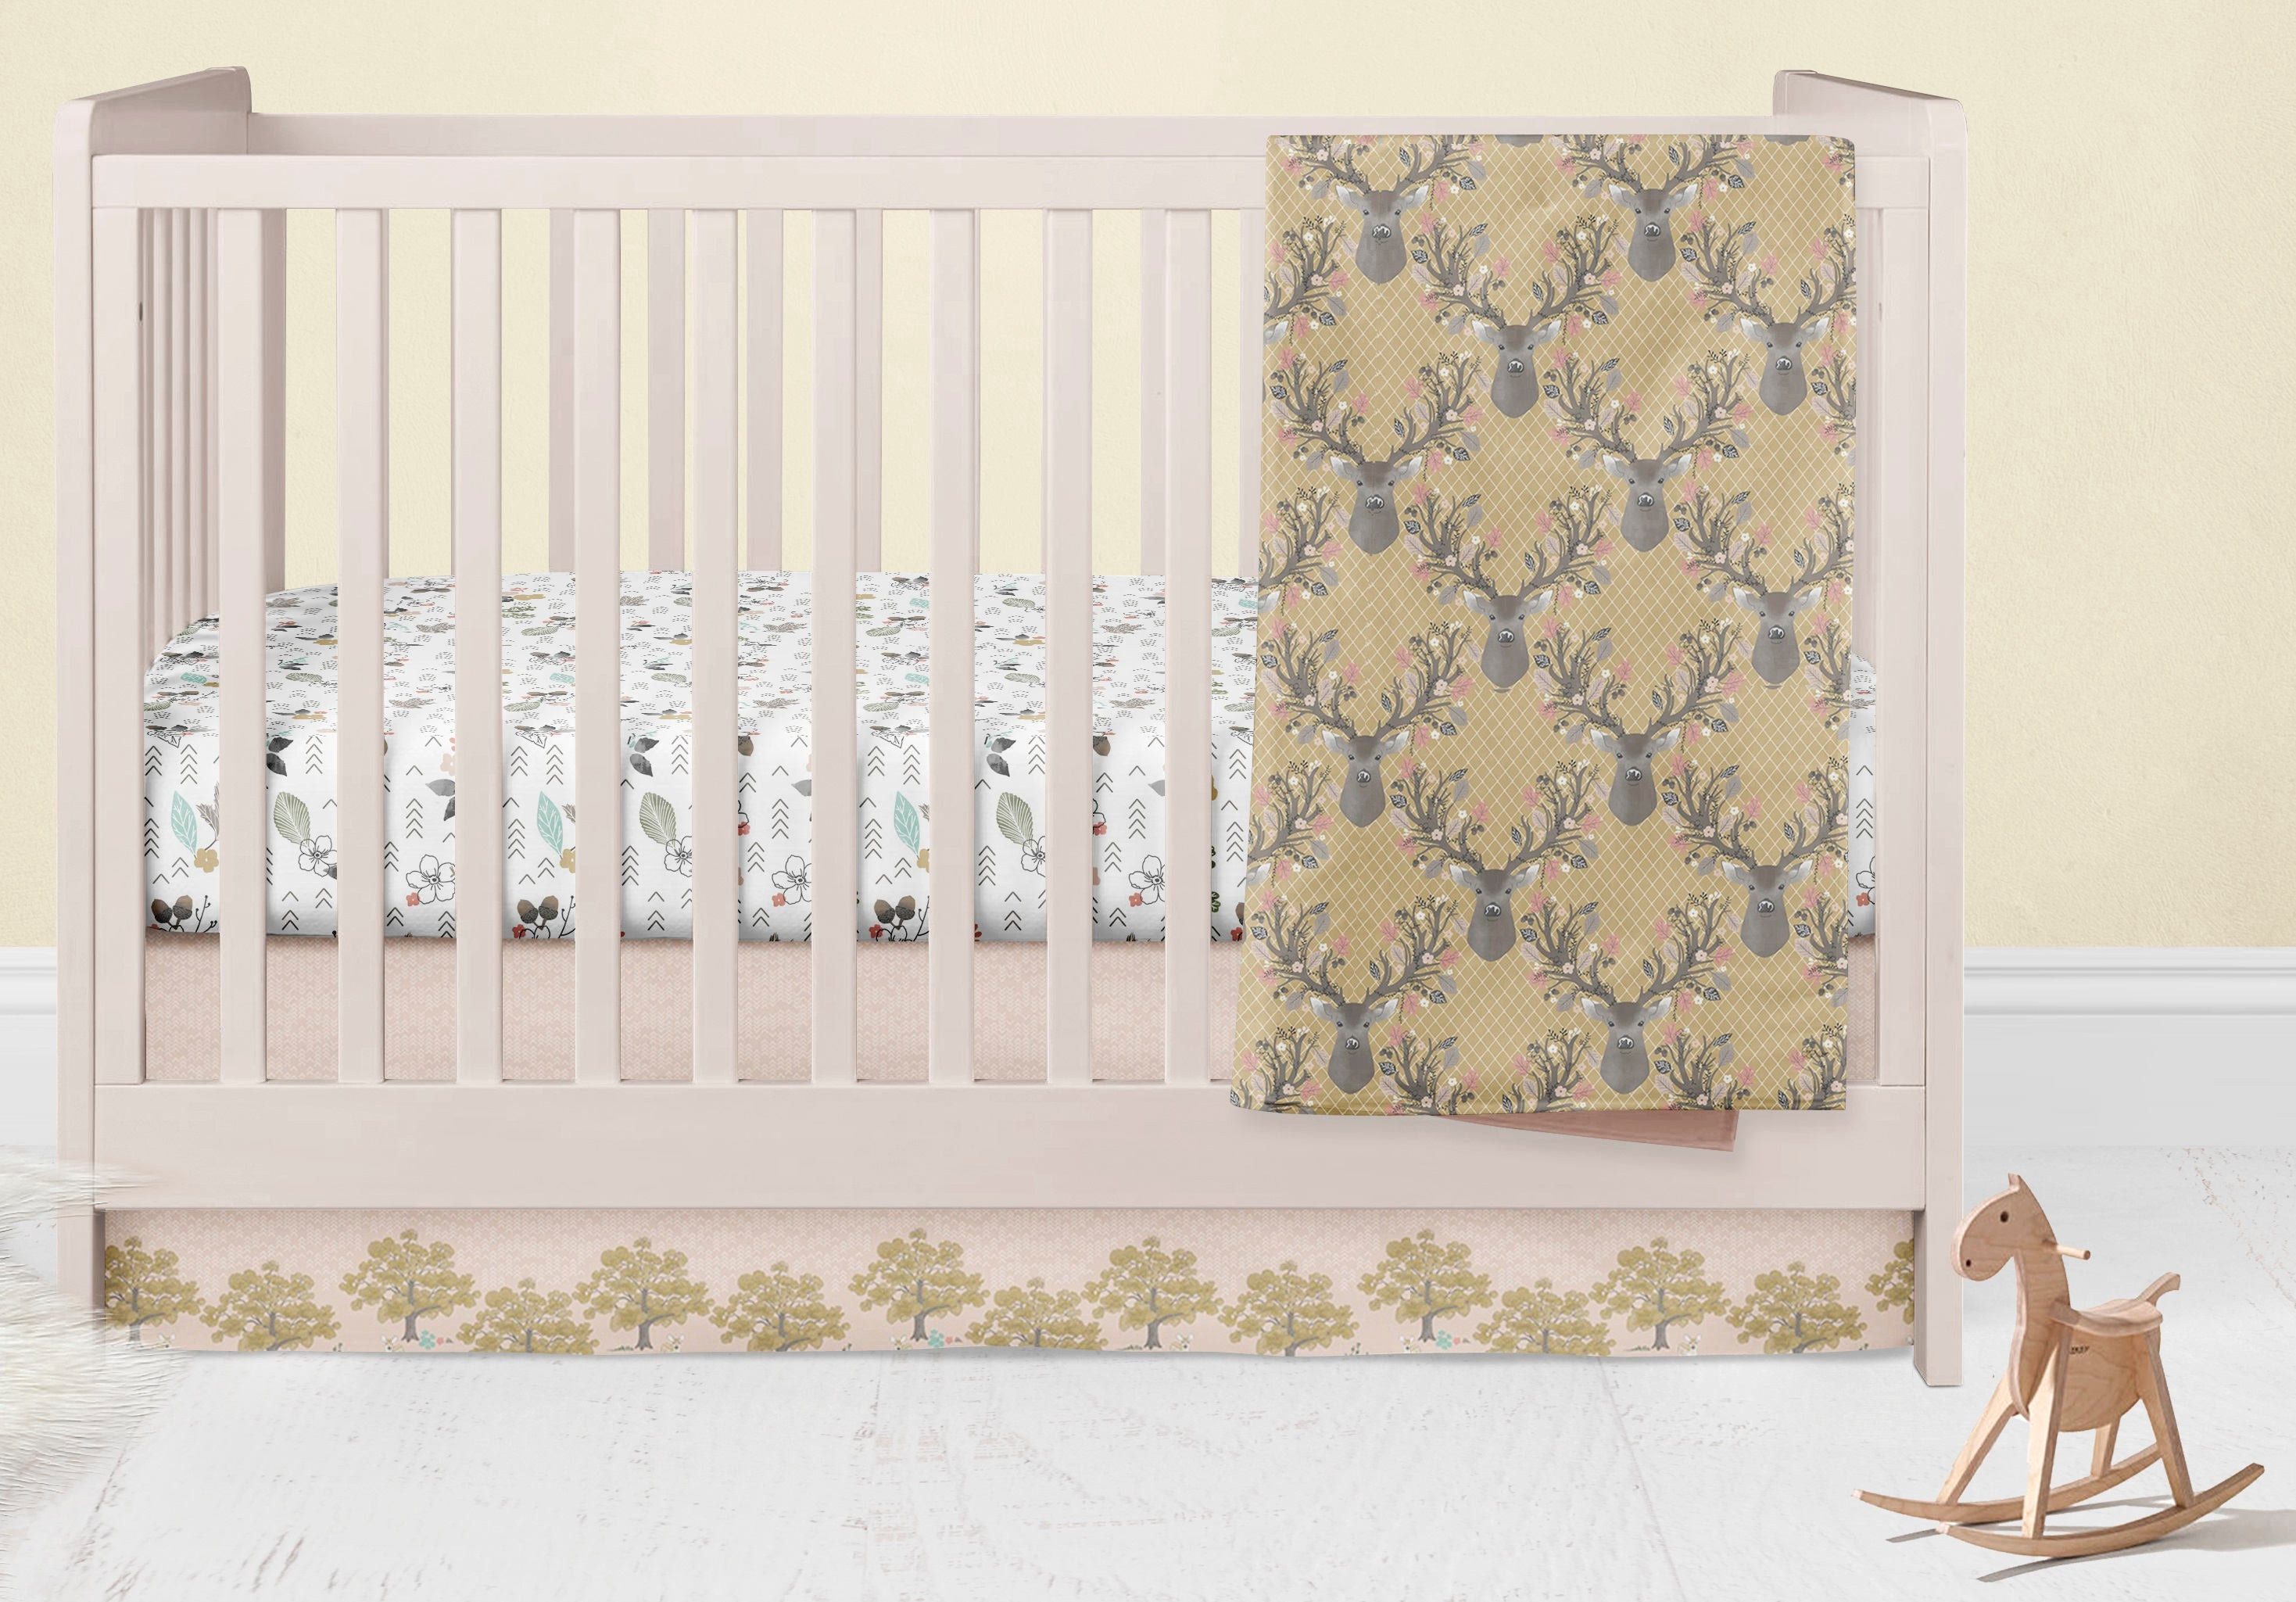 Fawn Changing Pad Cover- Deer Fitted Crib Sheet- Buck Change Mat Cover- Crib Bedding Set- Woodland Nursery Decor - Rustic Baby Shower- Boys - Dream Evergreen @DreamEvergreen